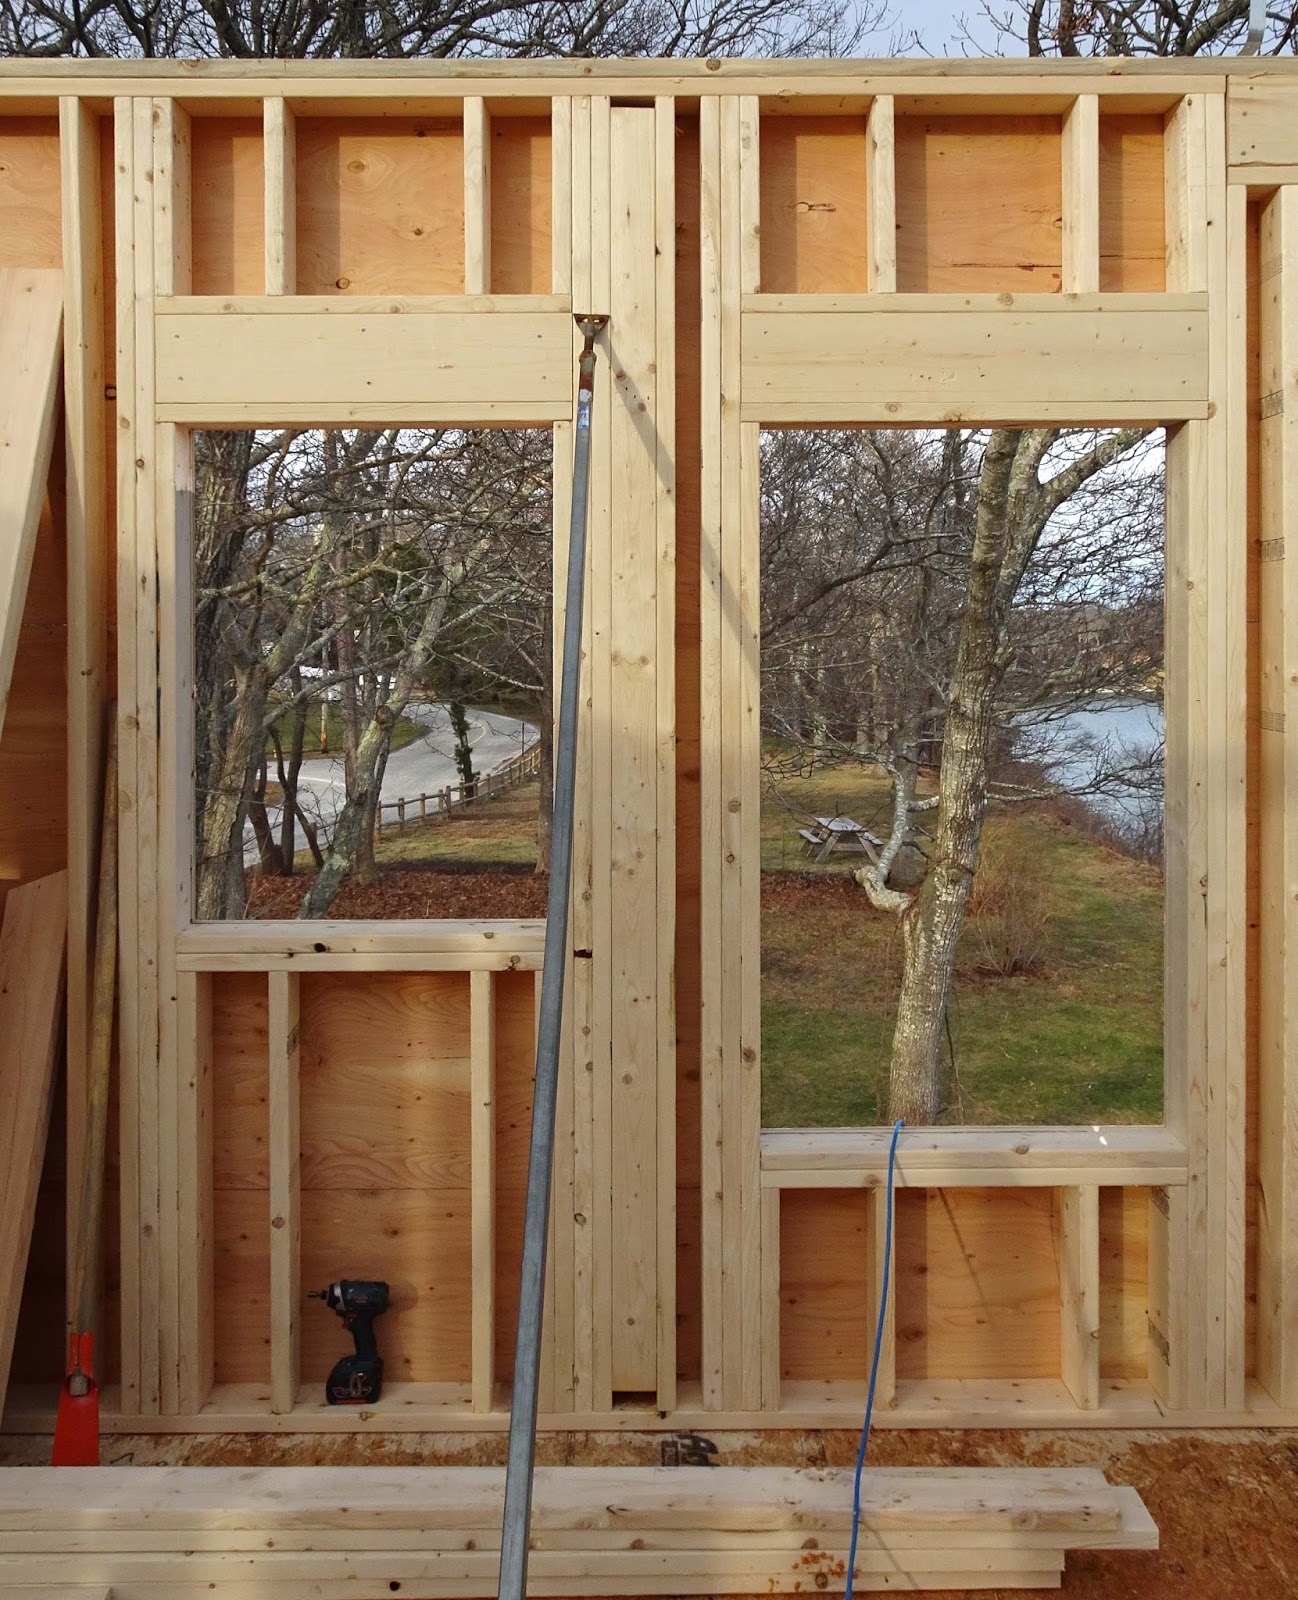 Joe 39 s retirement blog the second floor walls for What insulation to use in 2x6 walls